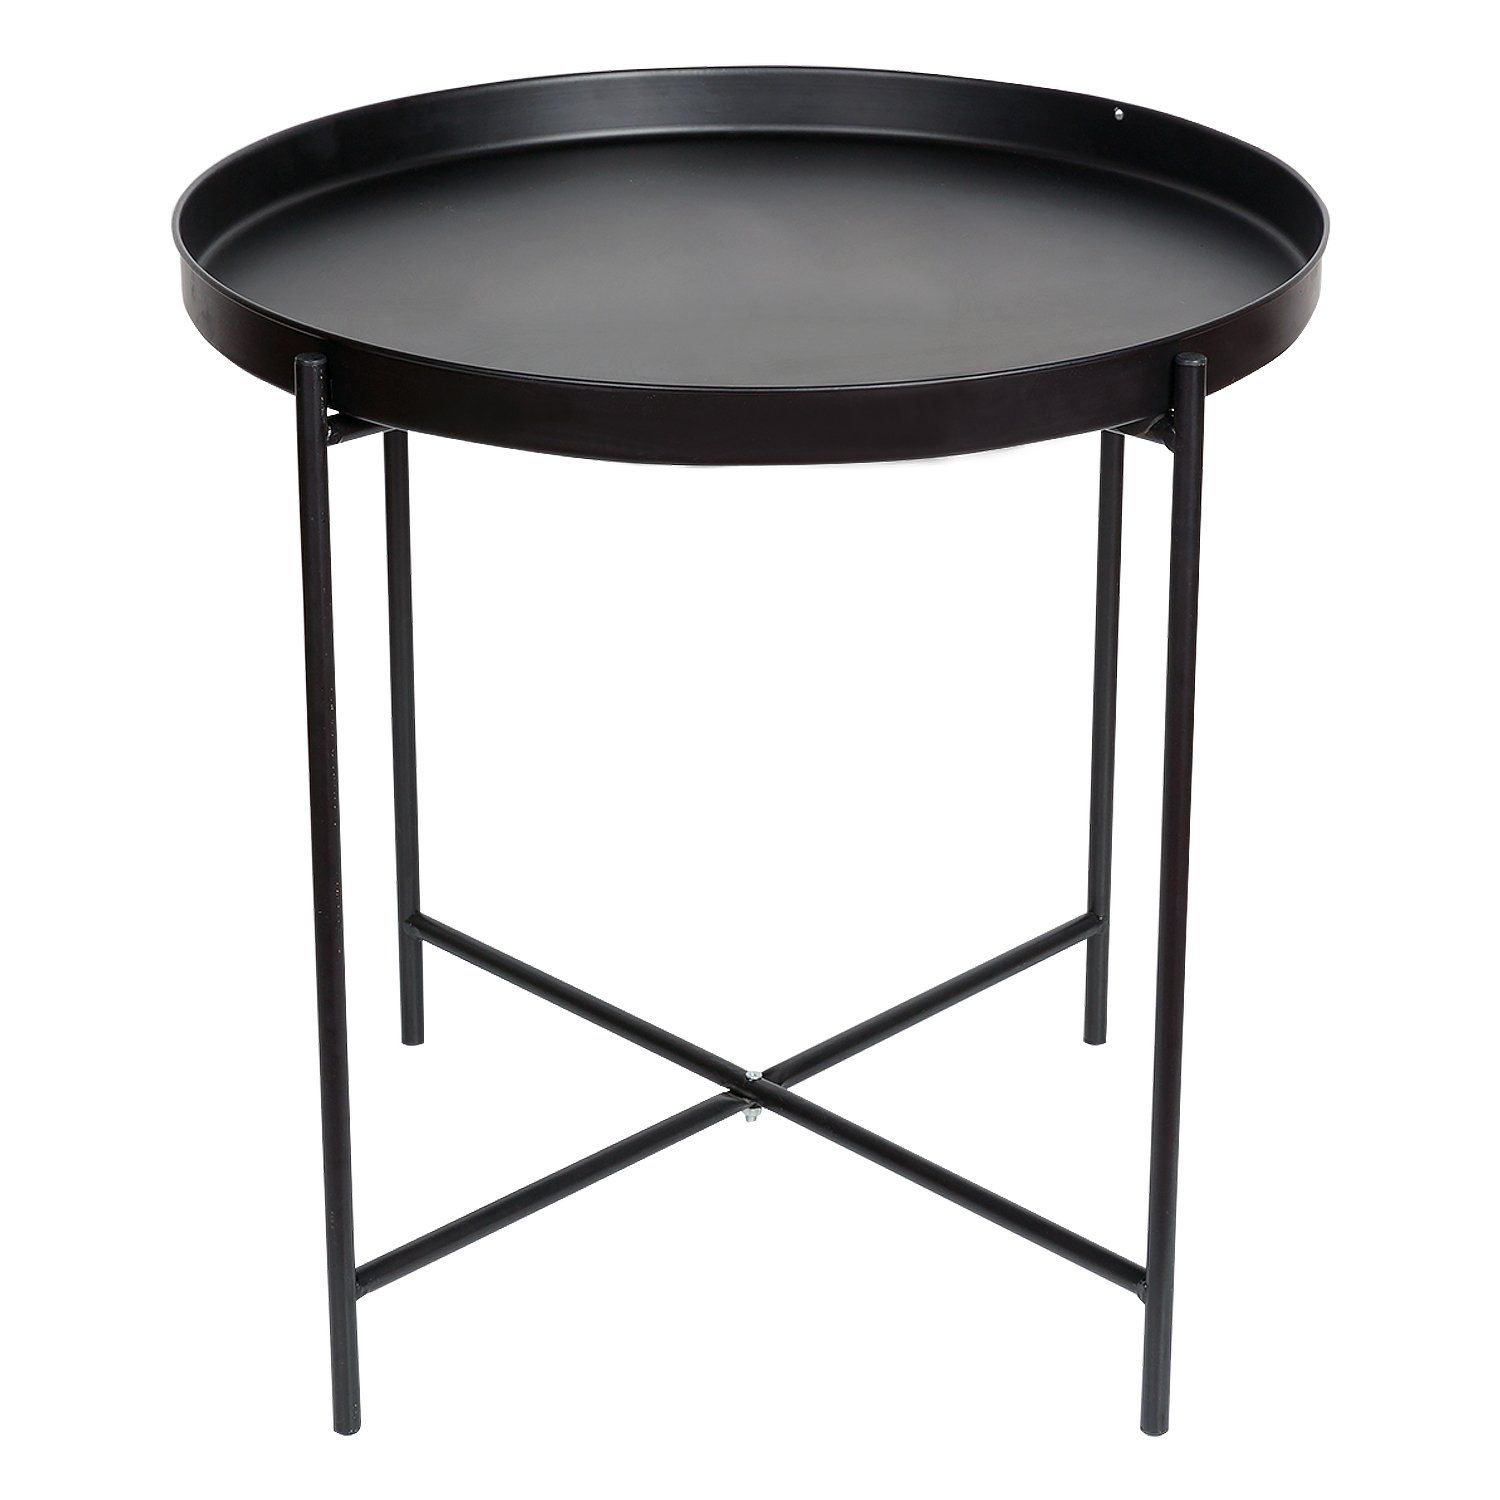 Hollyhome Folding Tray Metal End Table Black Can Be Used As Circle Foldable Side Tables Best Scallo In 2020 Round Coffee Table Living Room Coffee Table Sofa End Tables